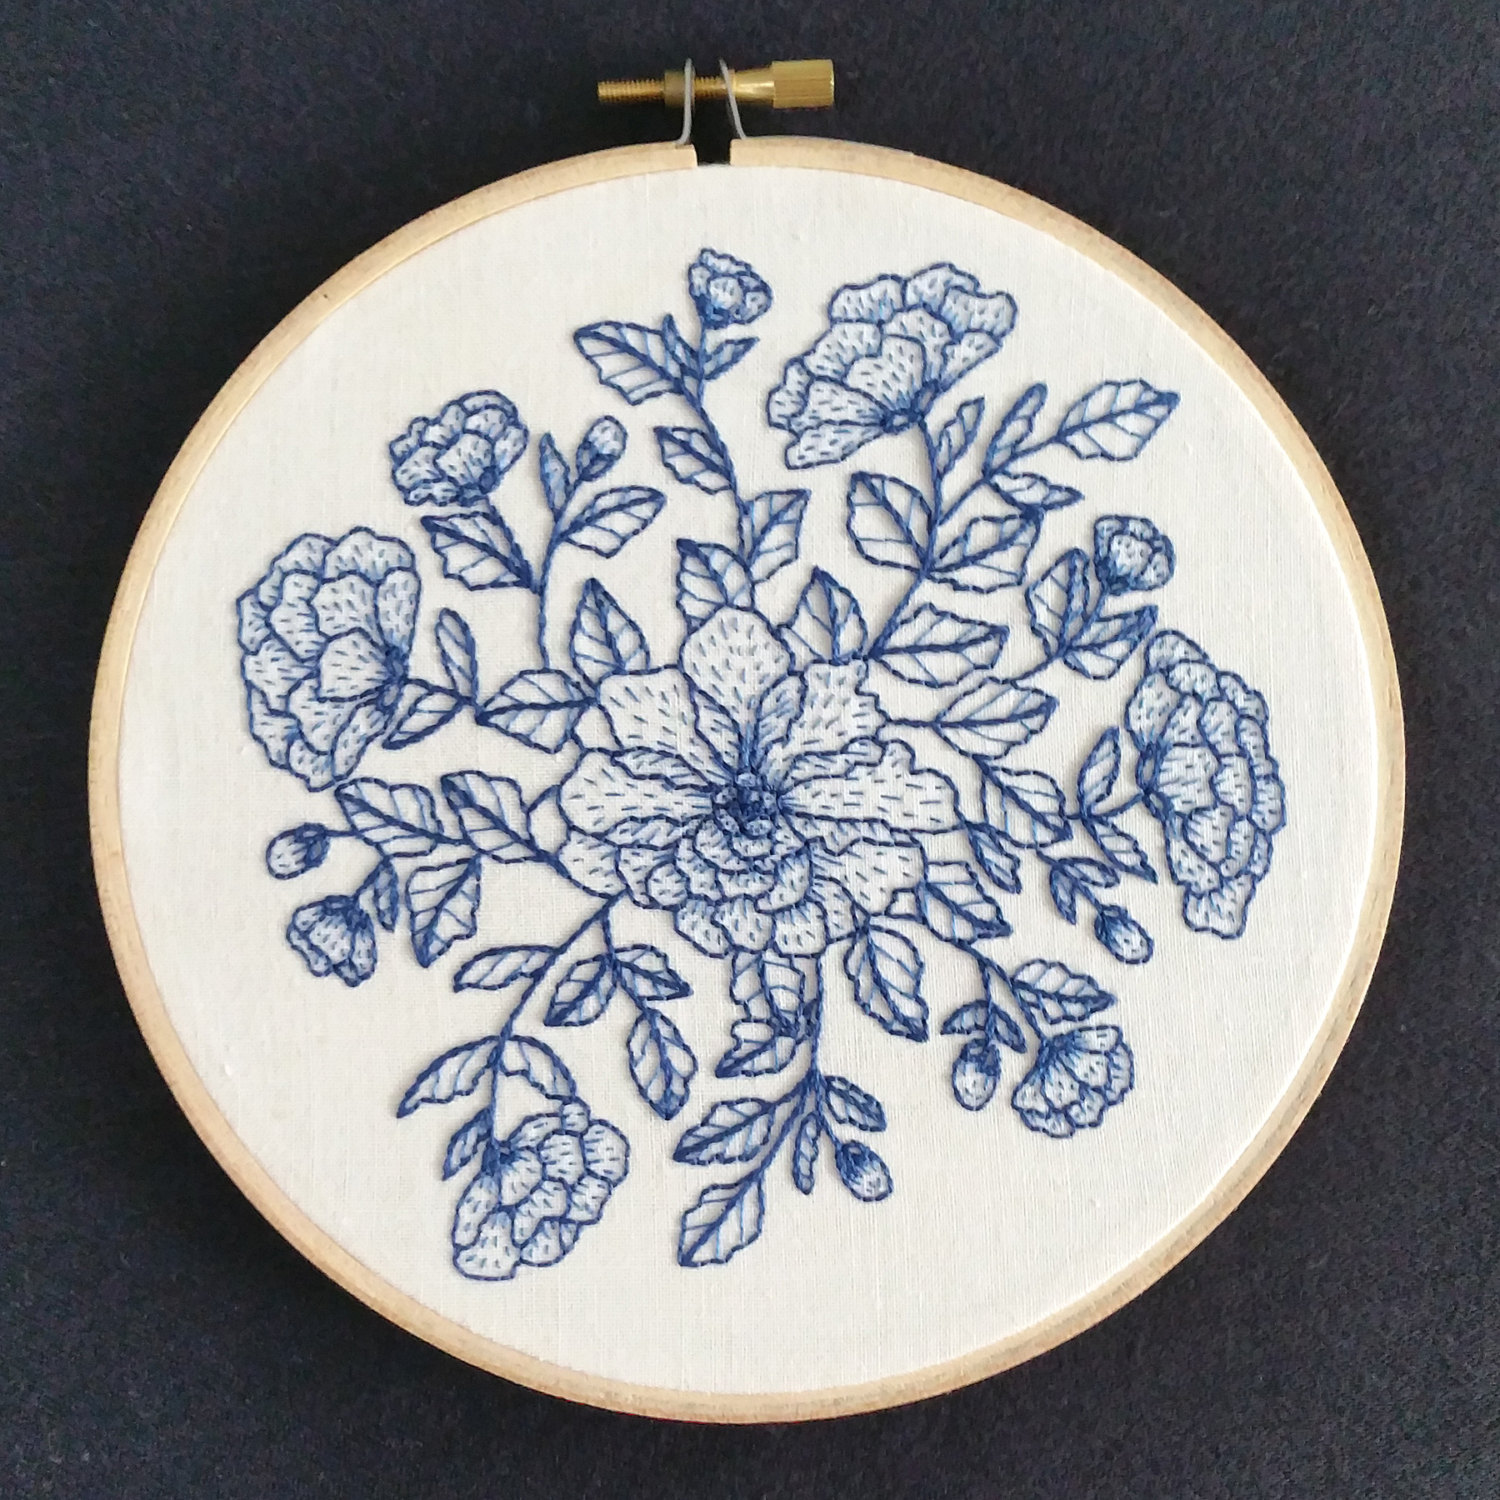 Mother's day gift guide embroidery hoop